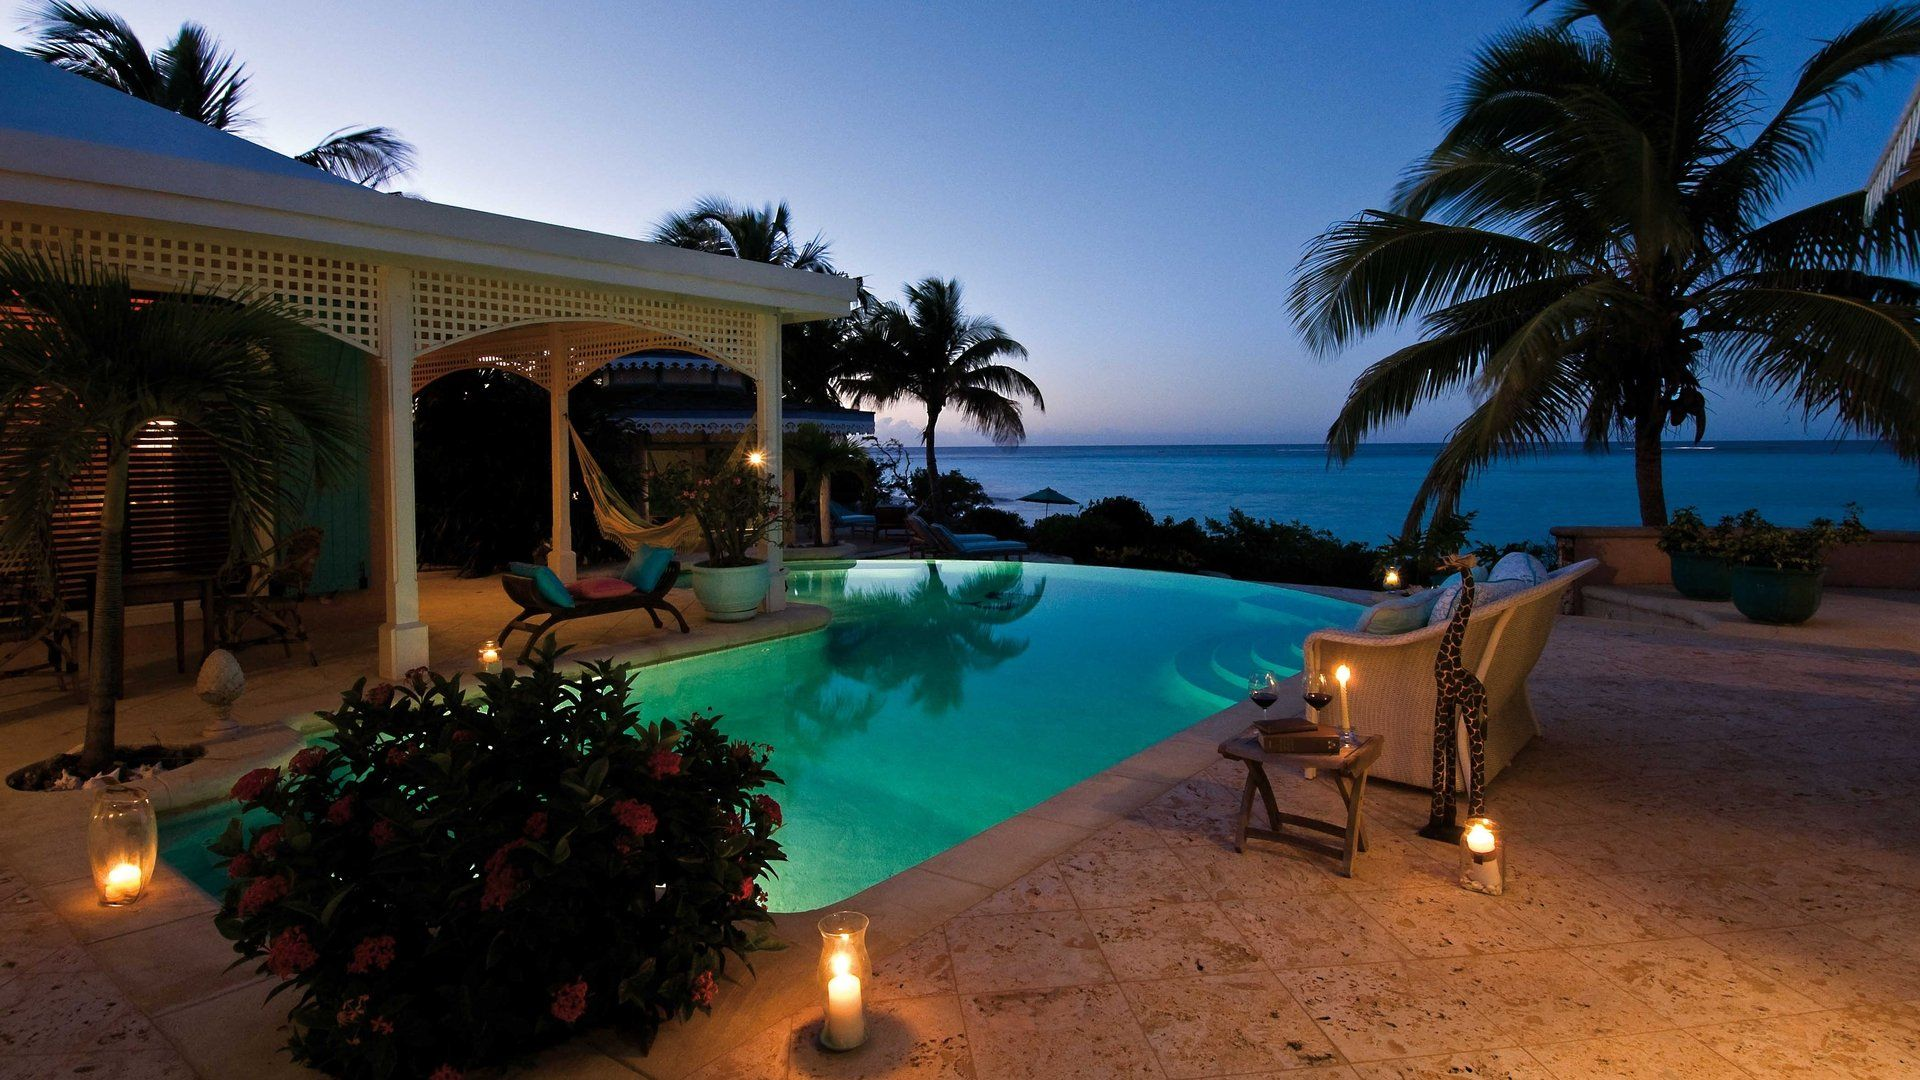 House Beach Luxury Lifestyle Dreams New Home Buyer Dream house images hd wallpaper